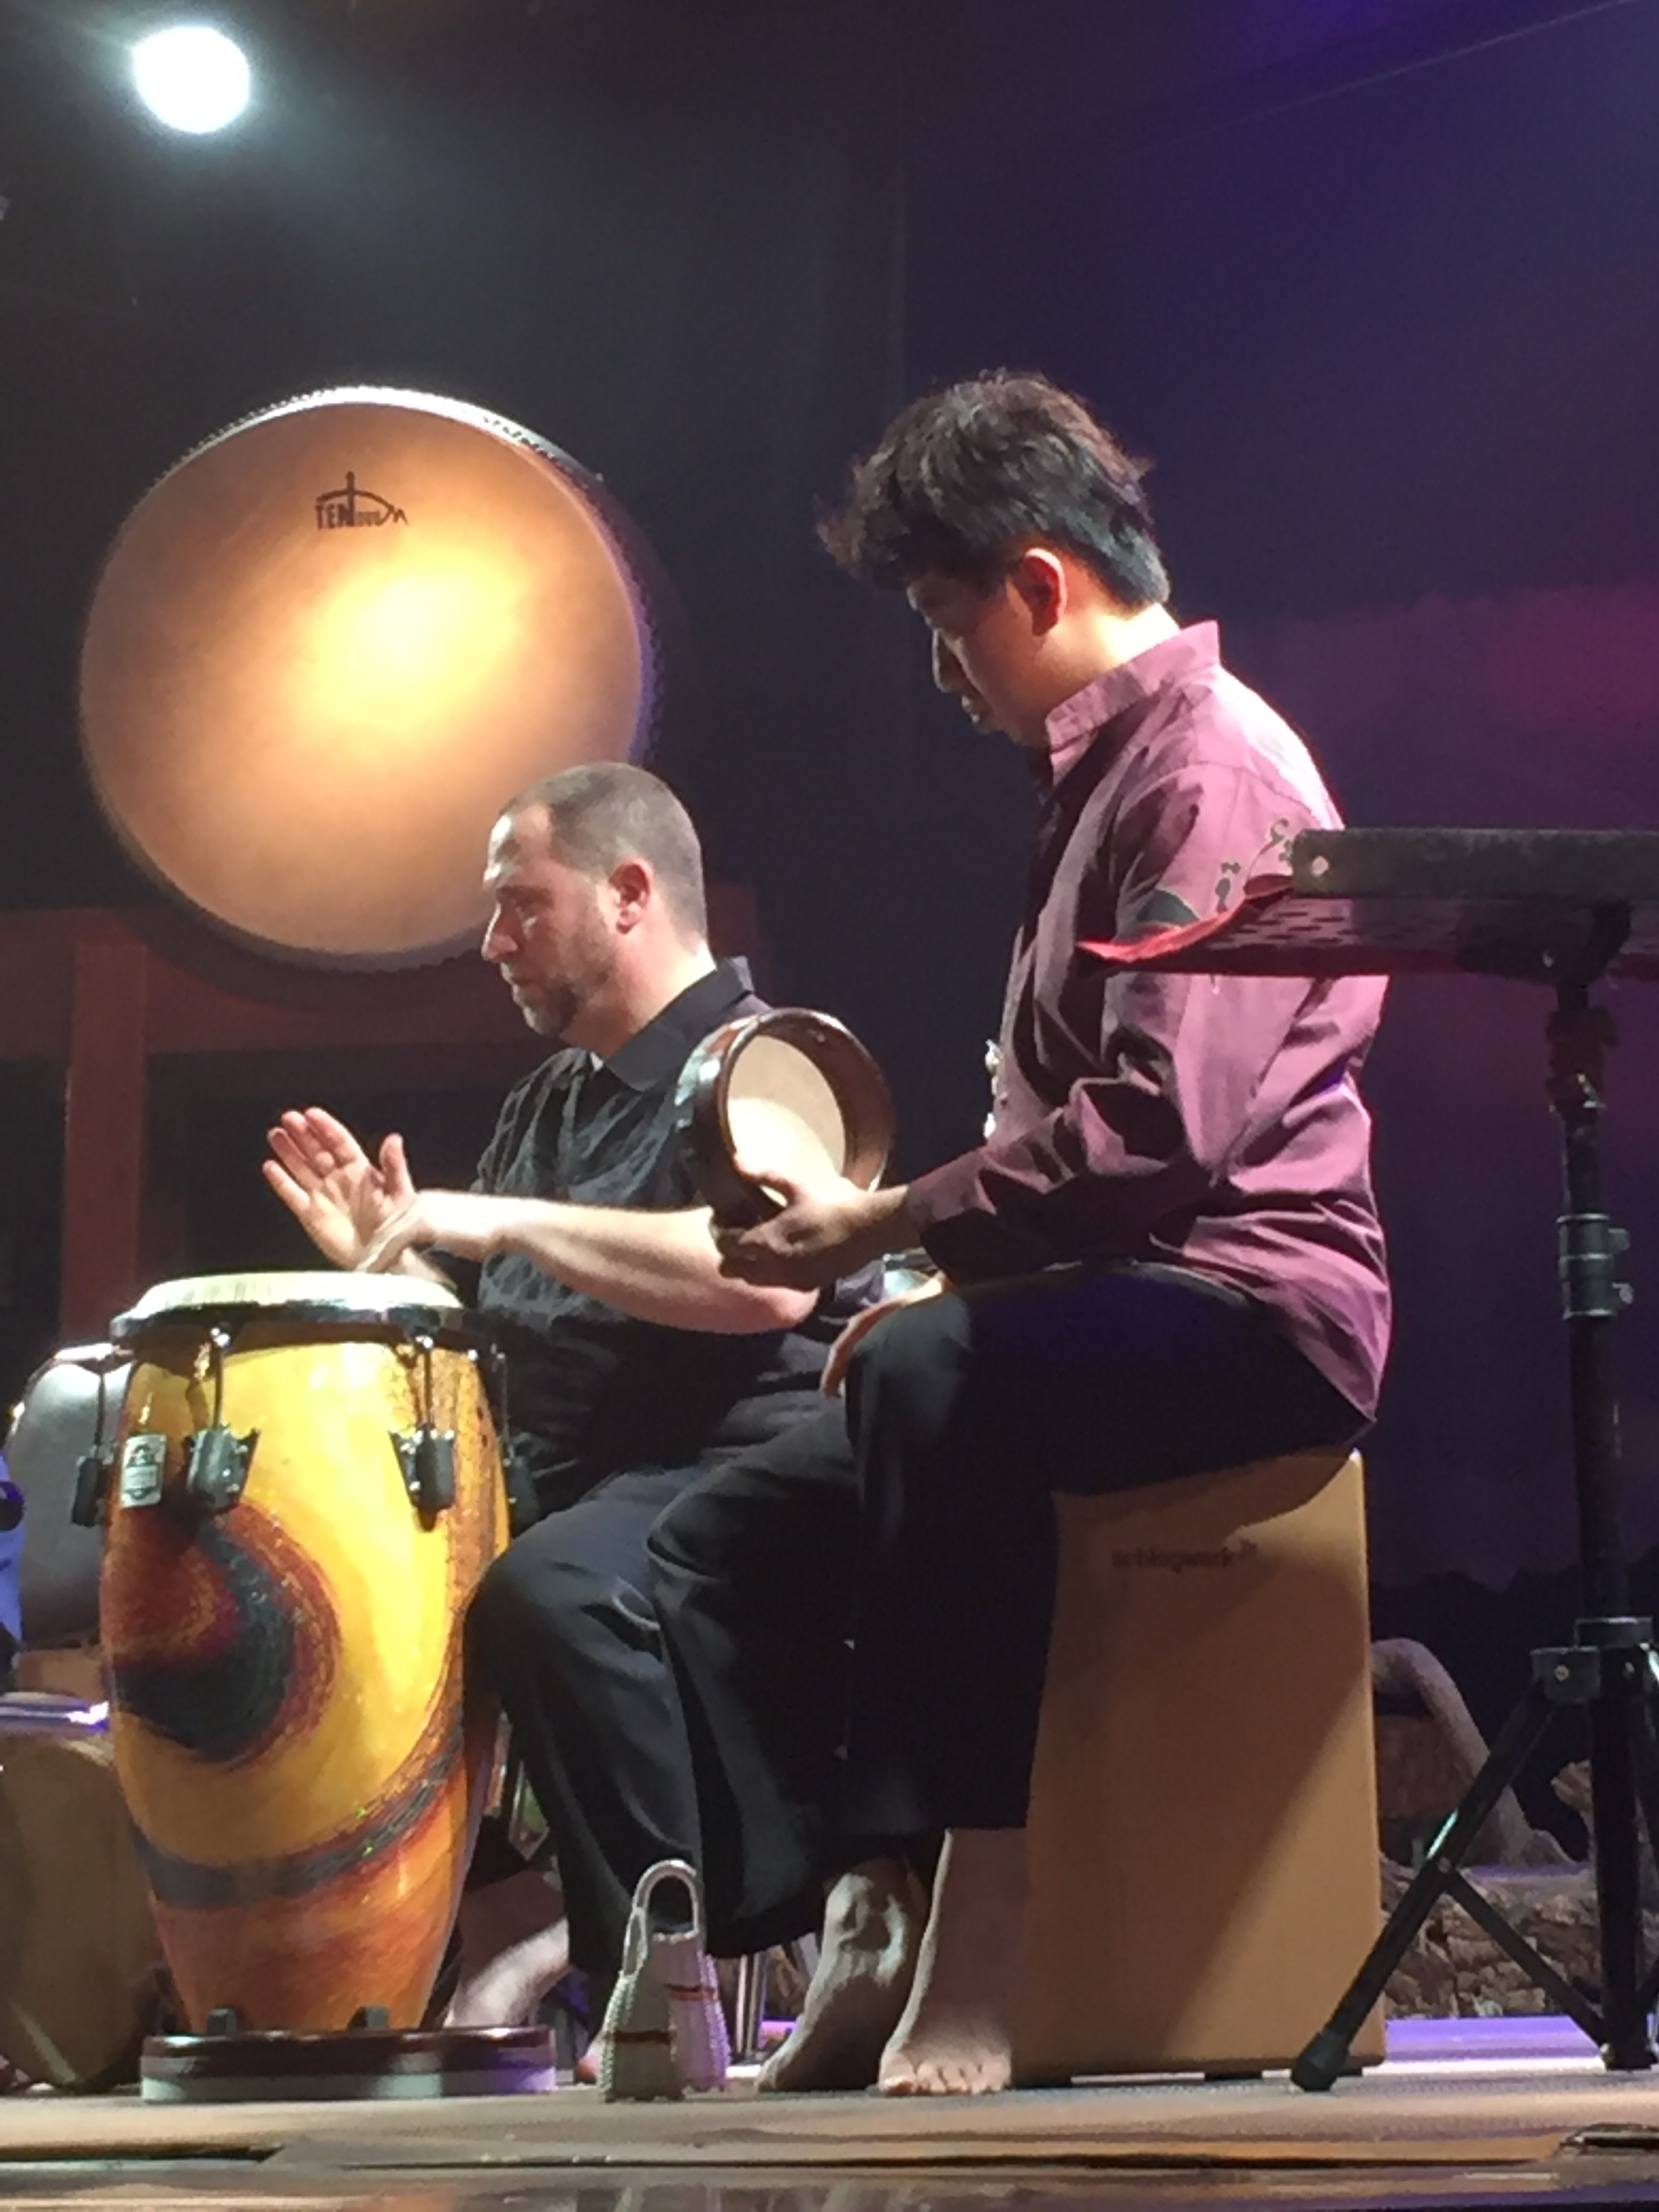 Randy and Andy.  Hands On'Semble. 2016 Tainan International Drum Festival.  Ten Drum, Kaohsiung Taiwan, February 11th 2016.